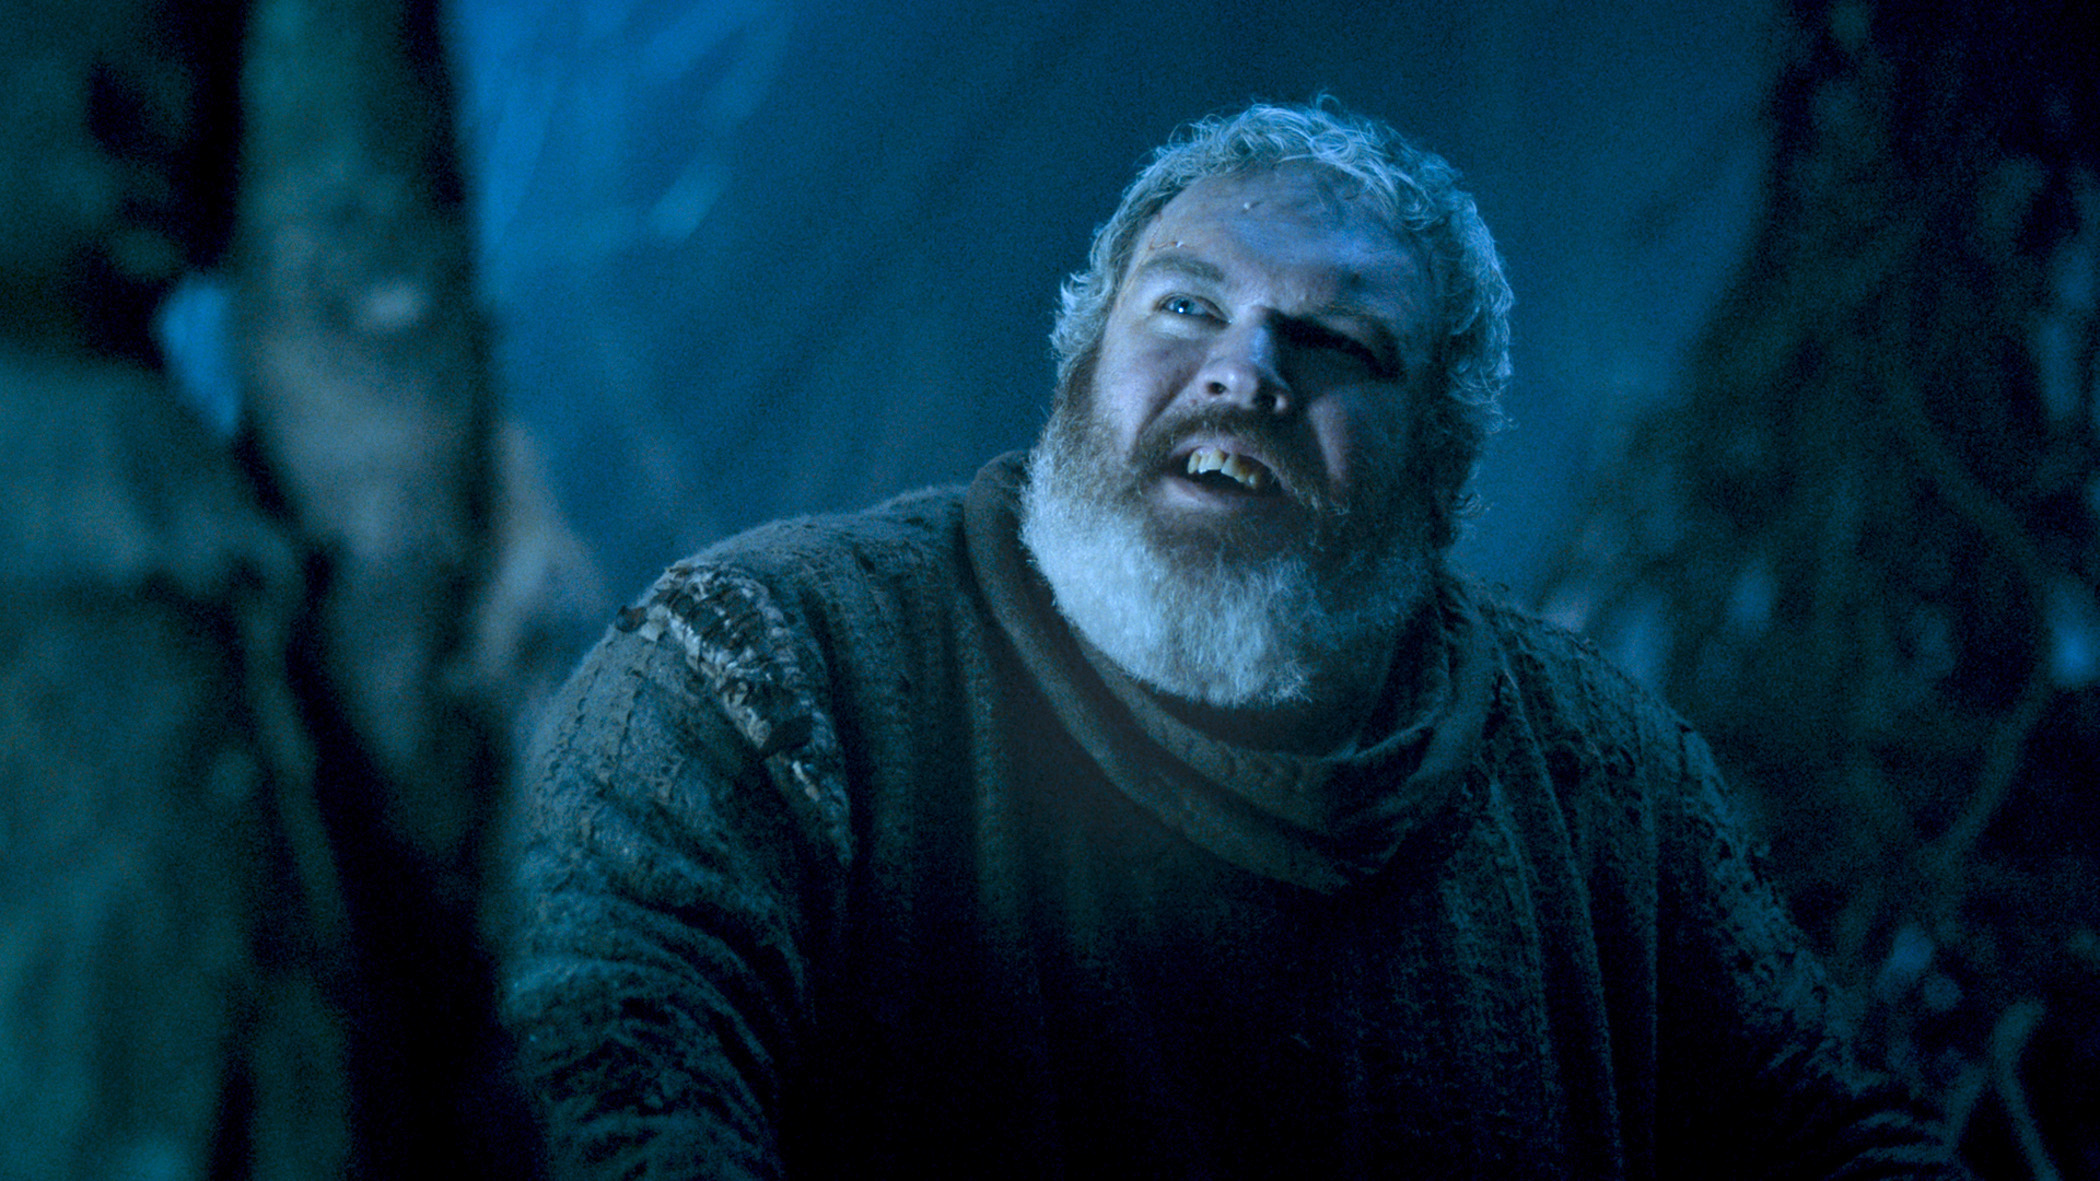 'Game of Thrones': Dead Characters Who Should Be Resurrected Before the Series Ends